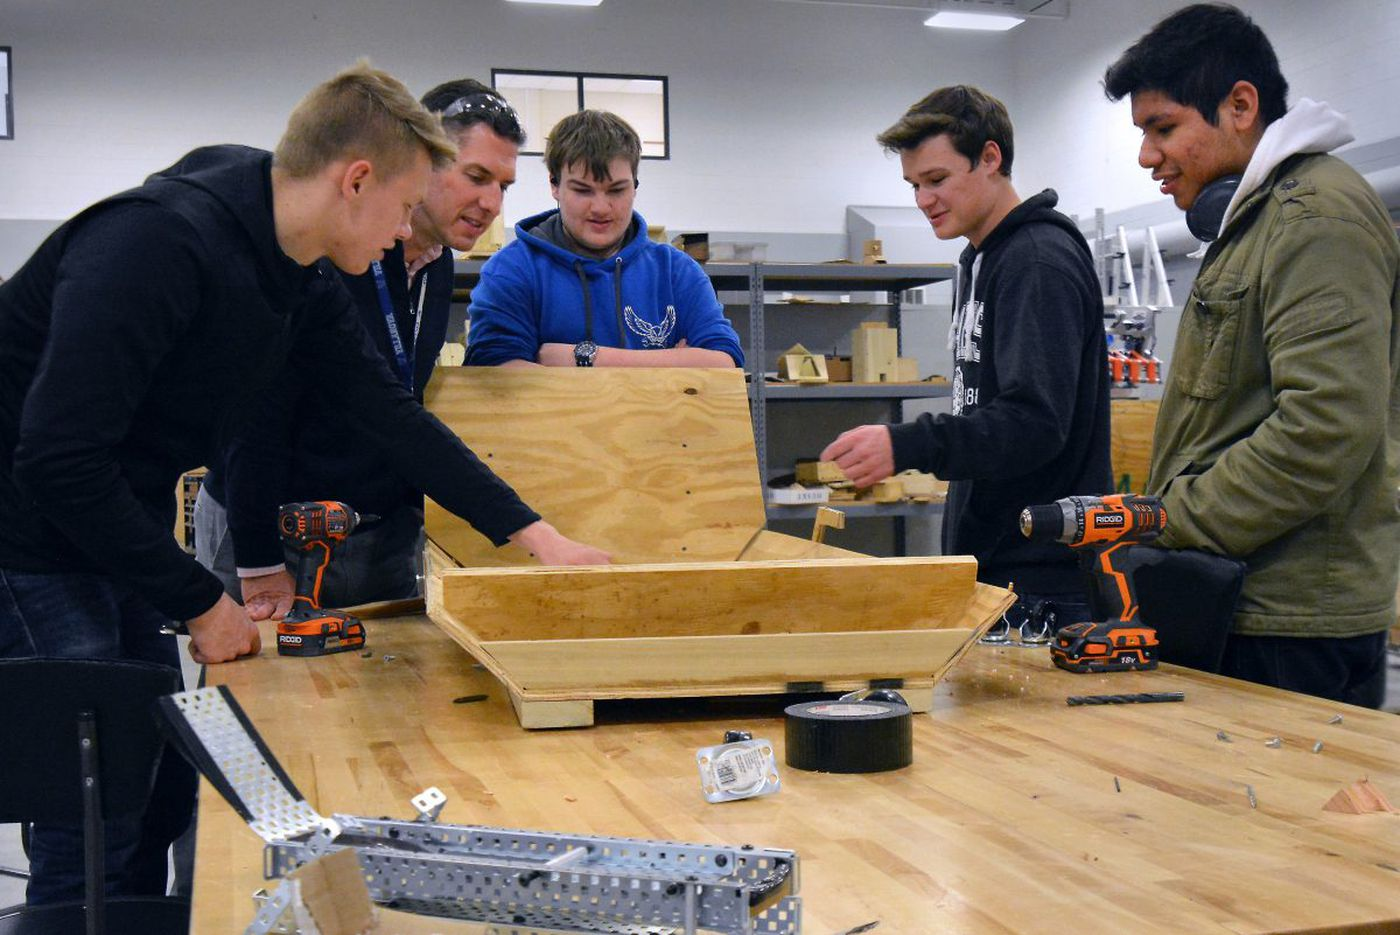 A sled for the blind? Students are making one at Bensalem High School